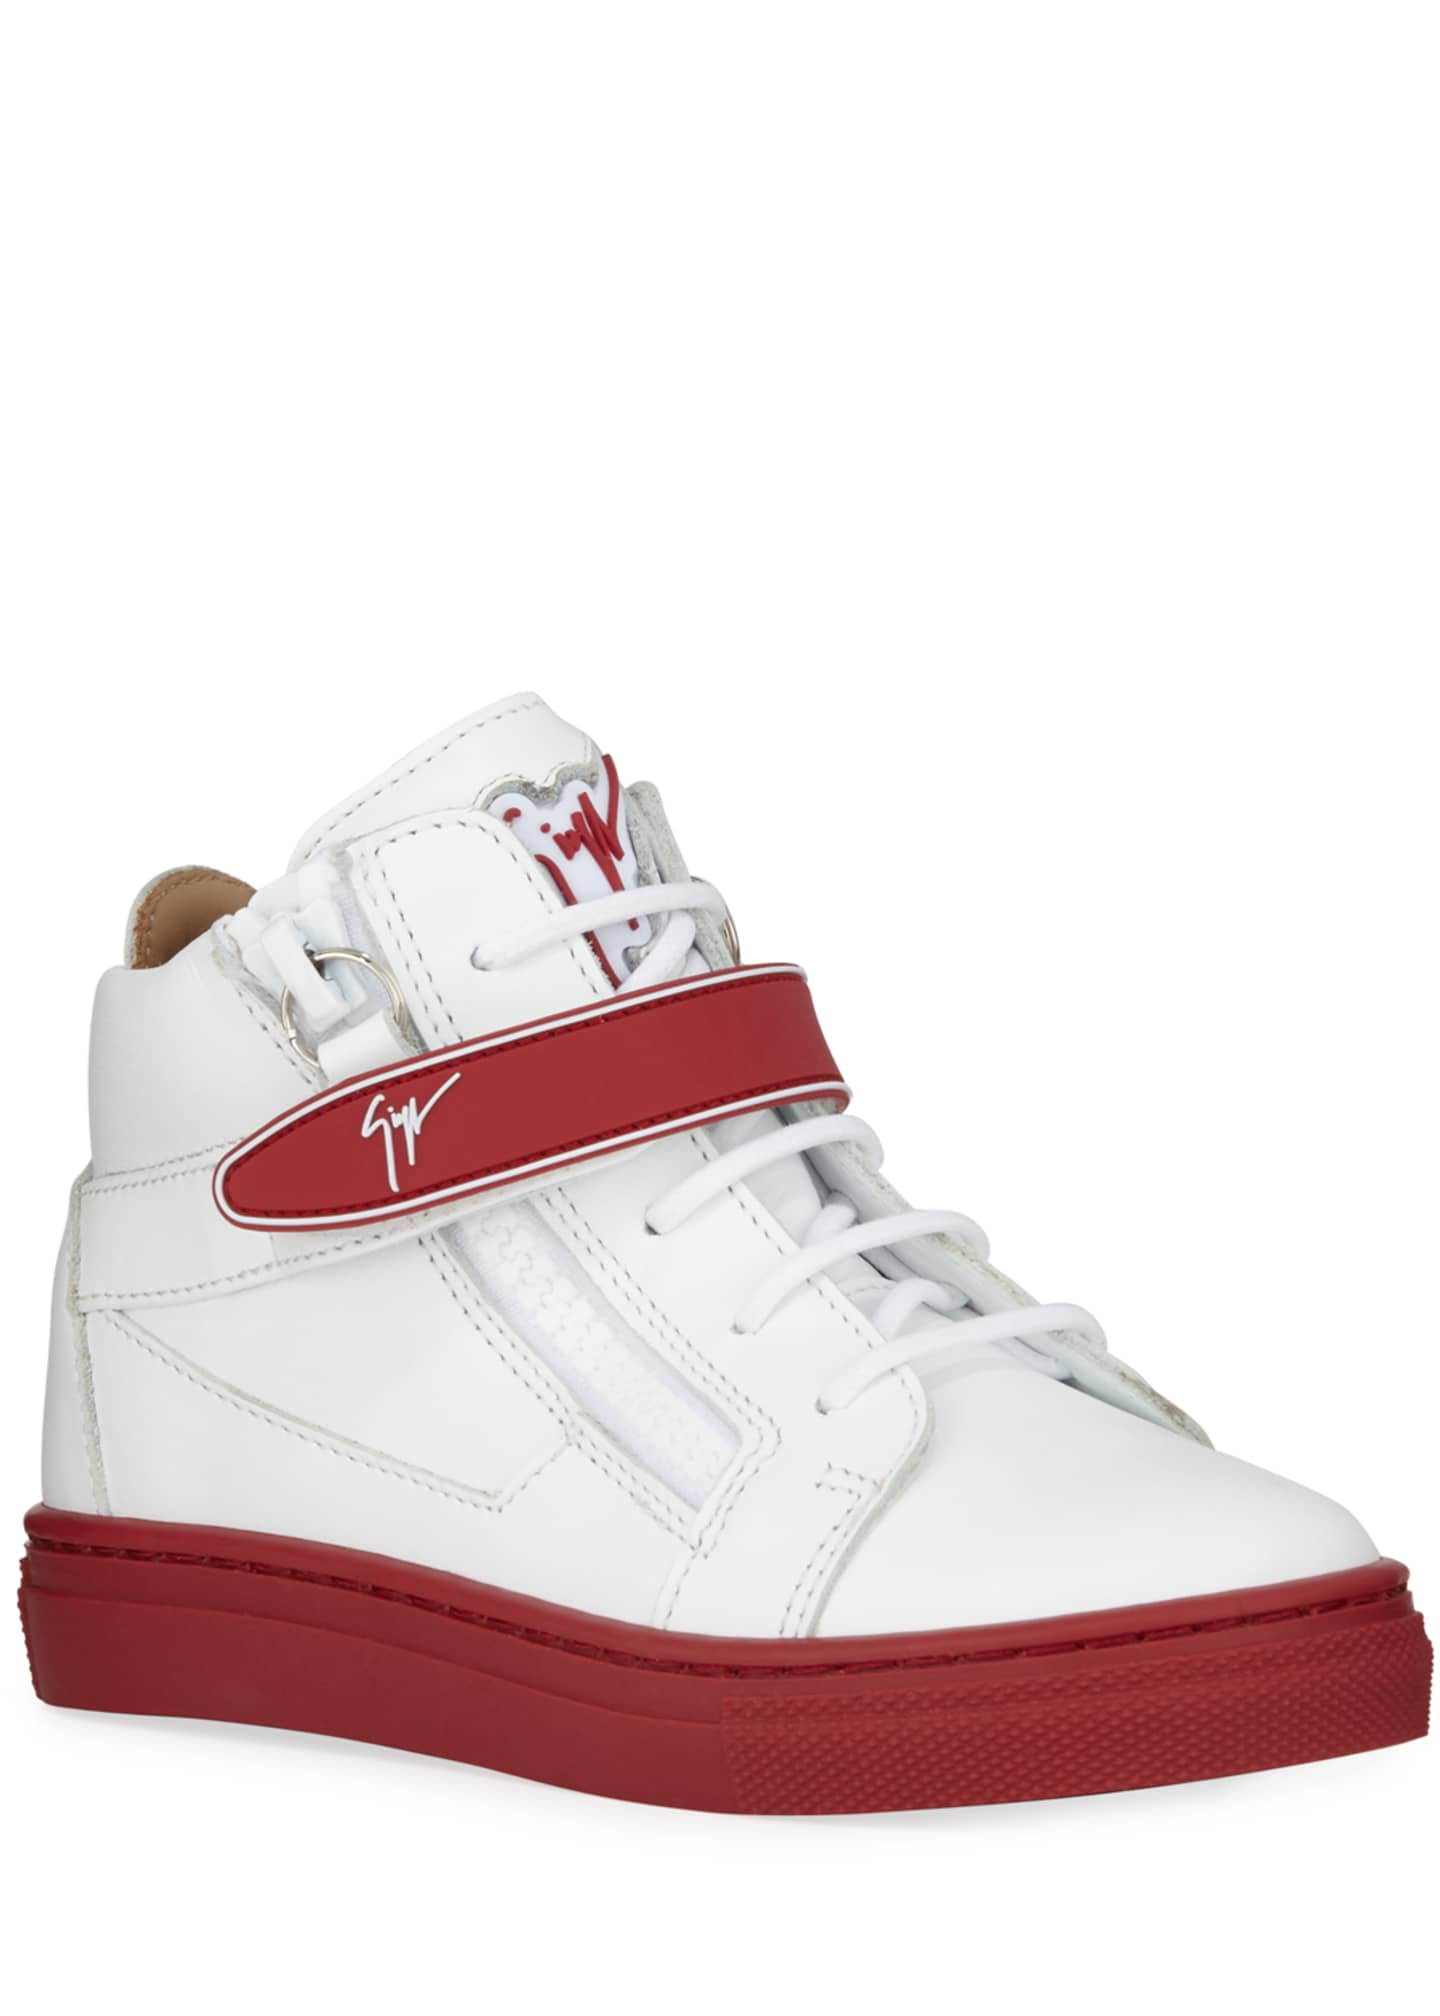 Giuseppe Zanotti London Leather Grip-Strap High-Top Sneakers,